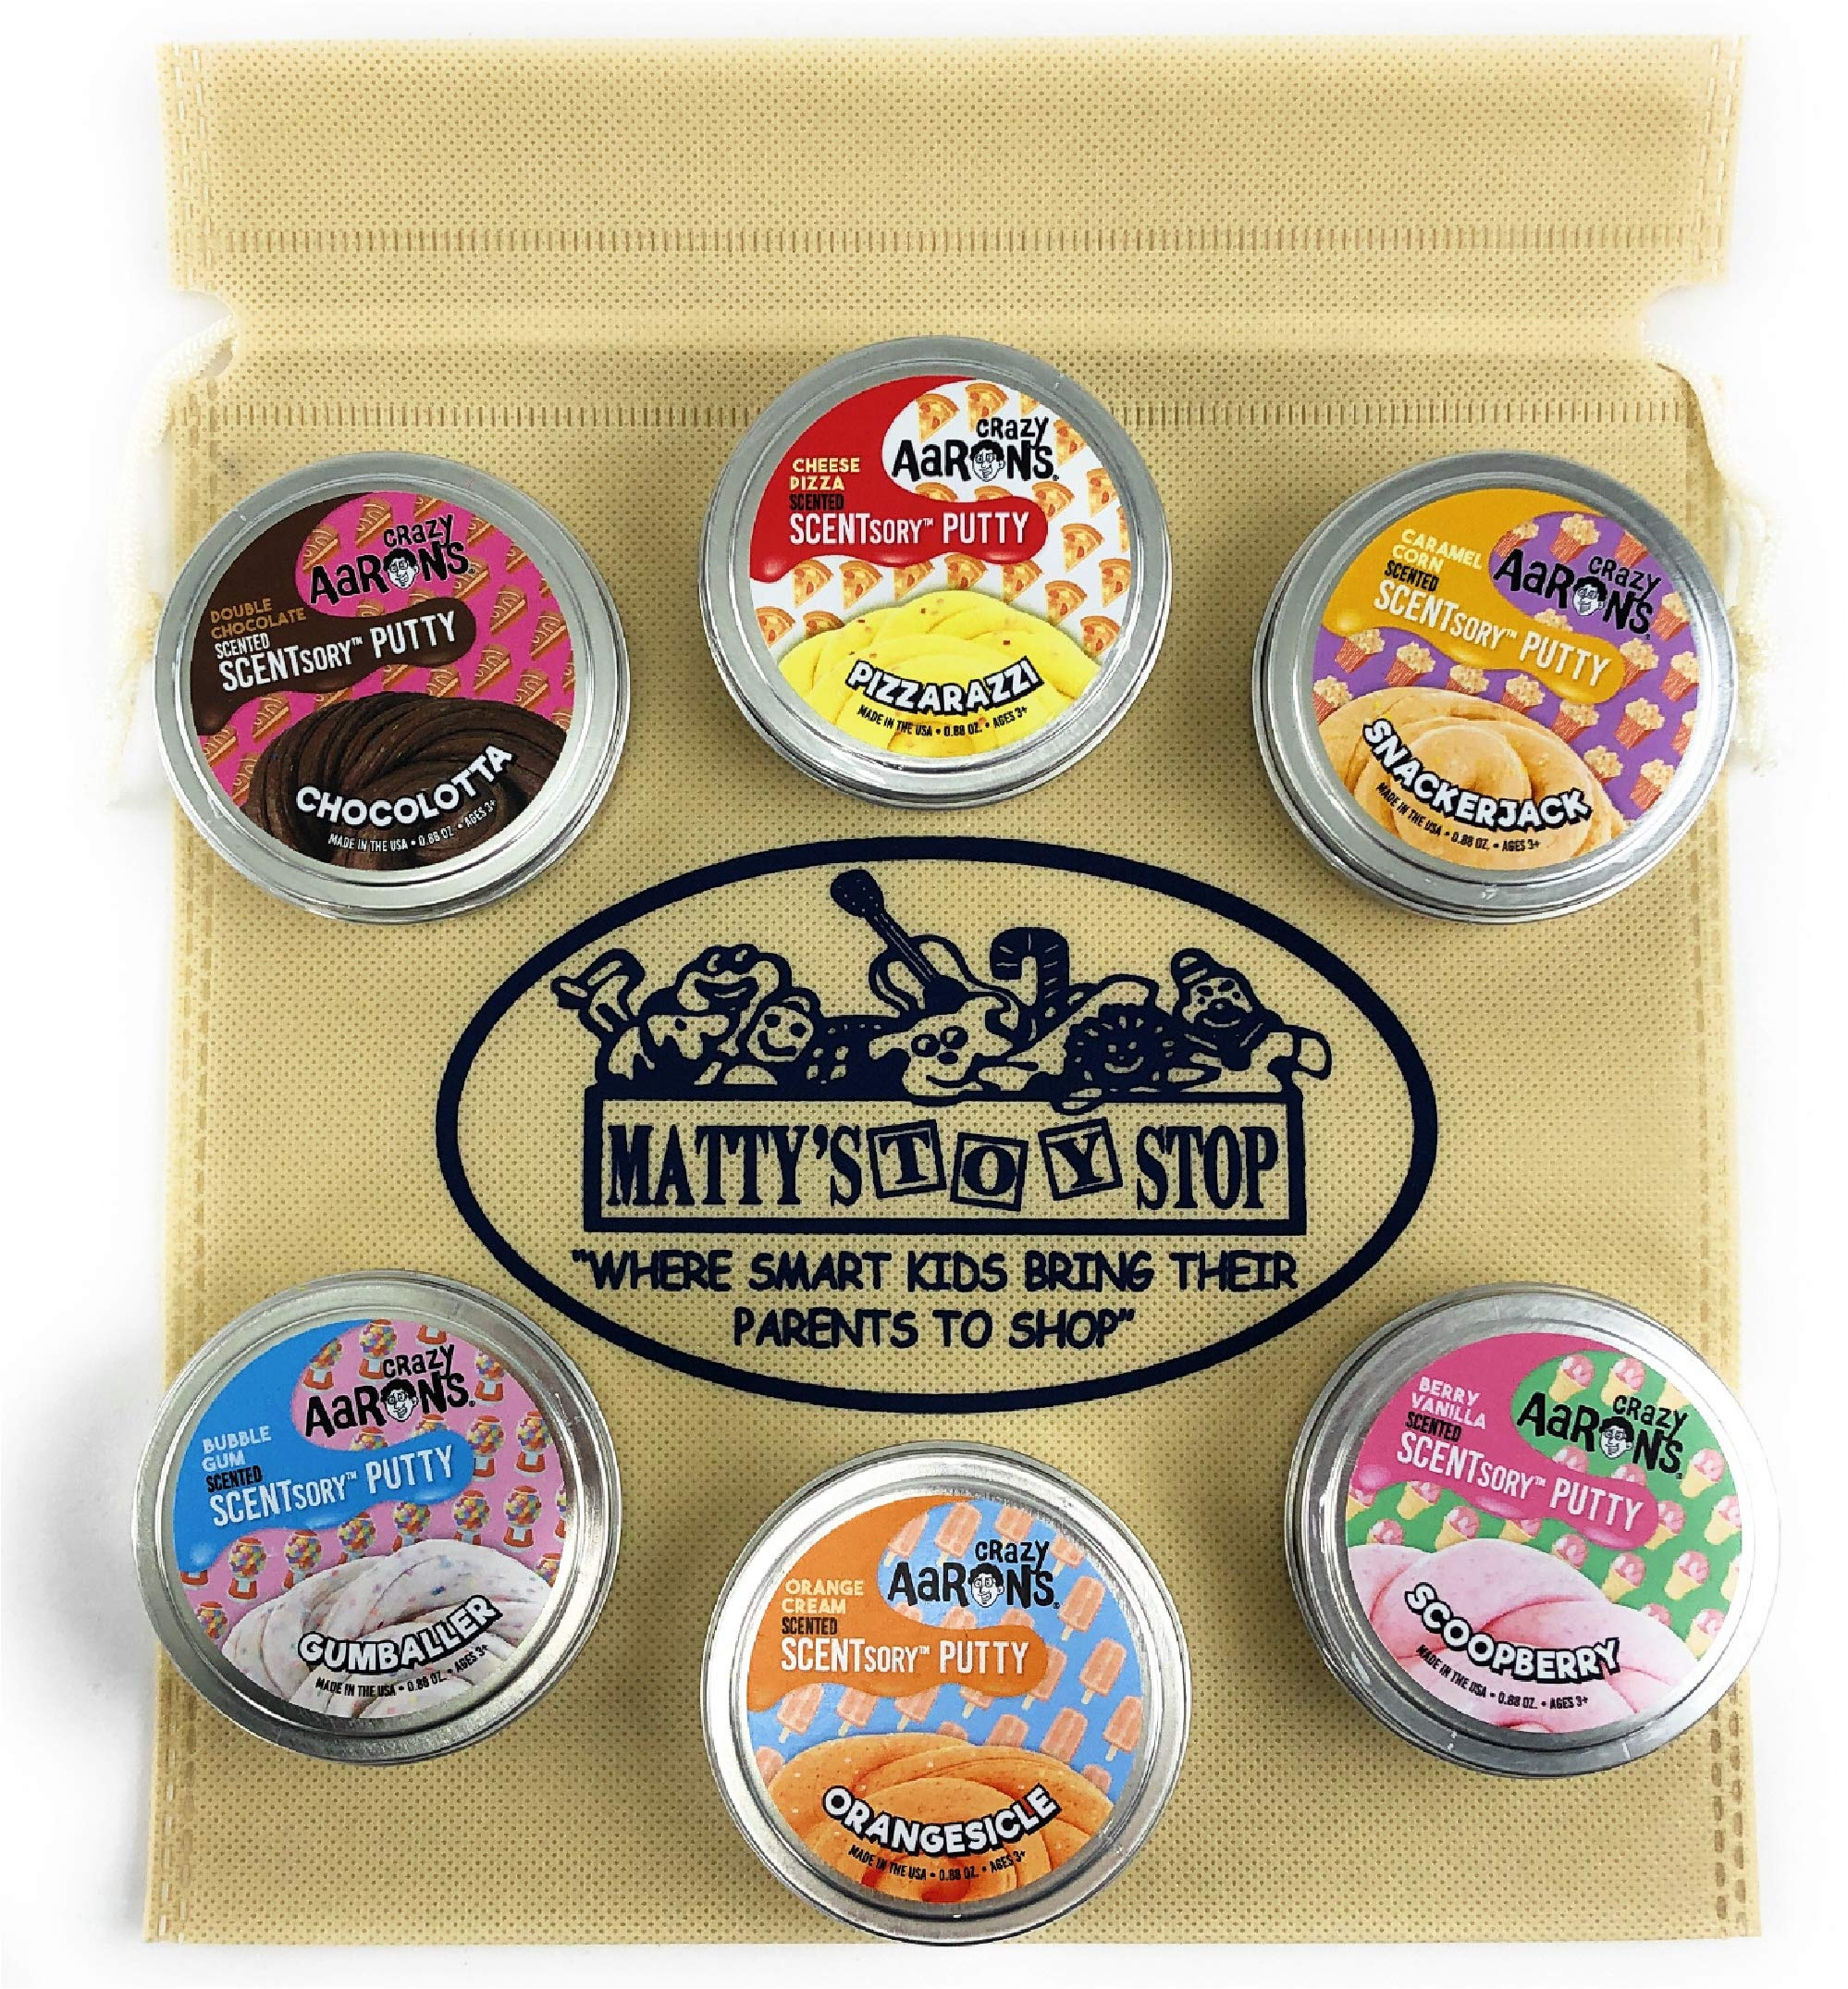 Crazy Aaron's Thinking Putty SCENTSory Tins Deluxe Gift Set Bundle Featuring Pizzarazzi, Gumballer, Chocolatta, Snackerjack, Scoopberry, Orangesicle & Bonus Matty's Toy Stop Bag - 6 Pack (.88 oz each) by Crazy Aaron's (Image #3)